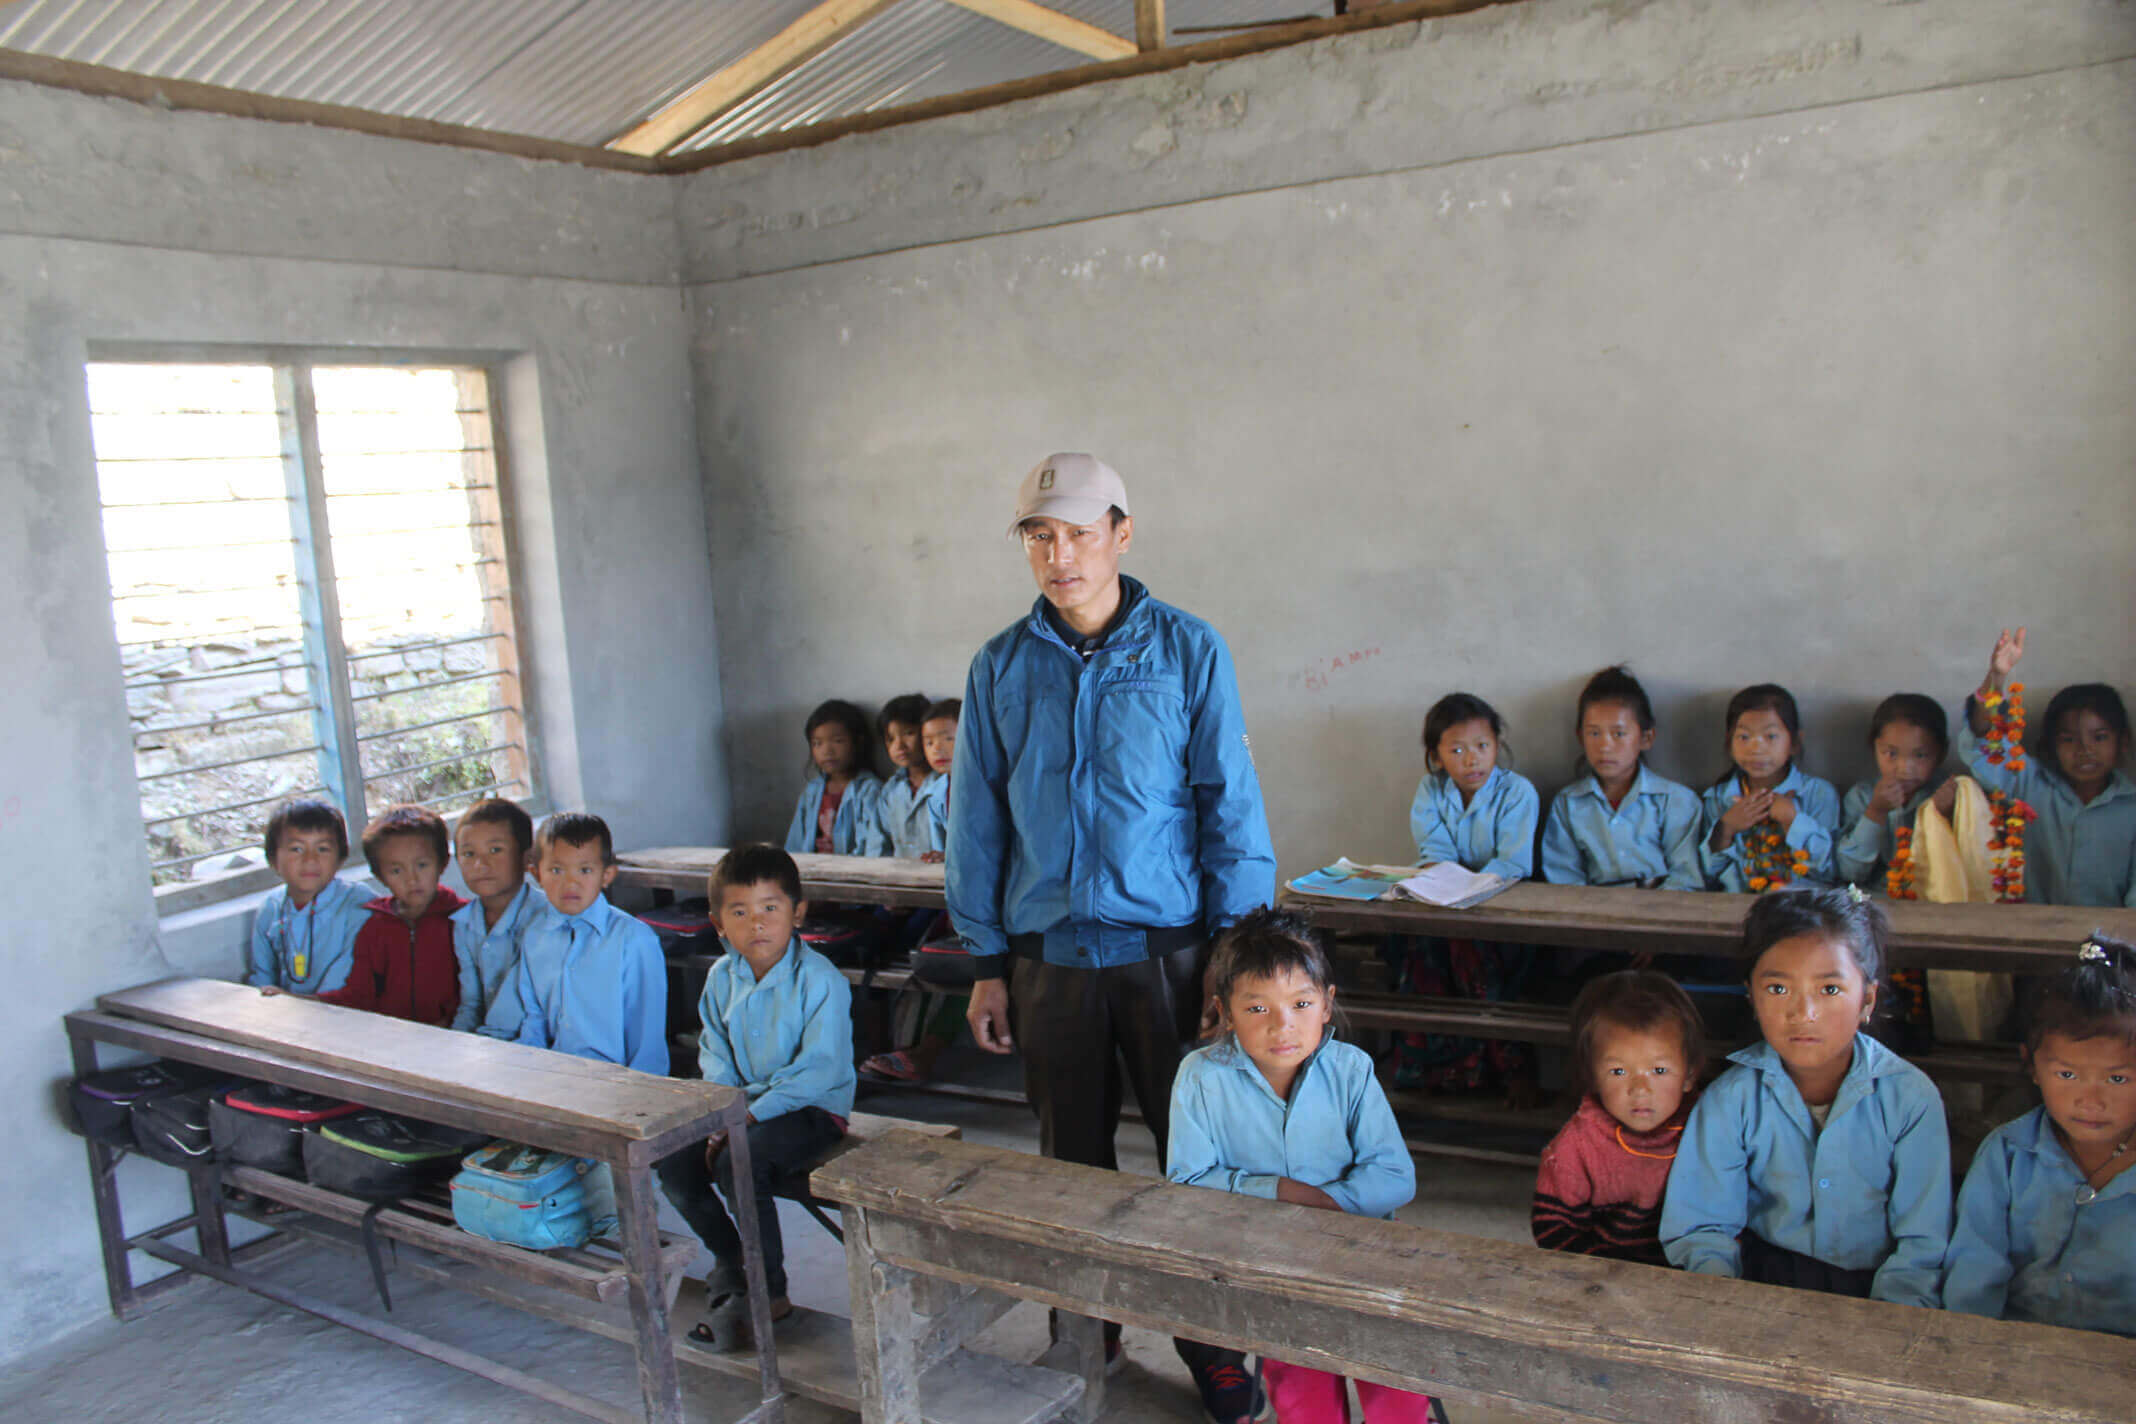 First phase: Look inside new classroom in the school